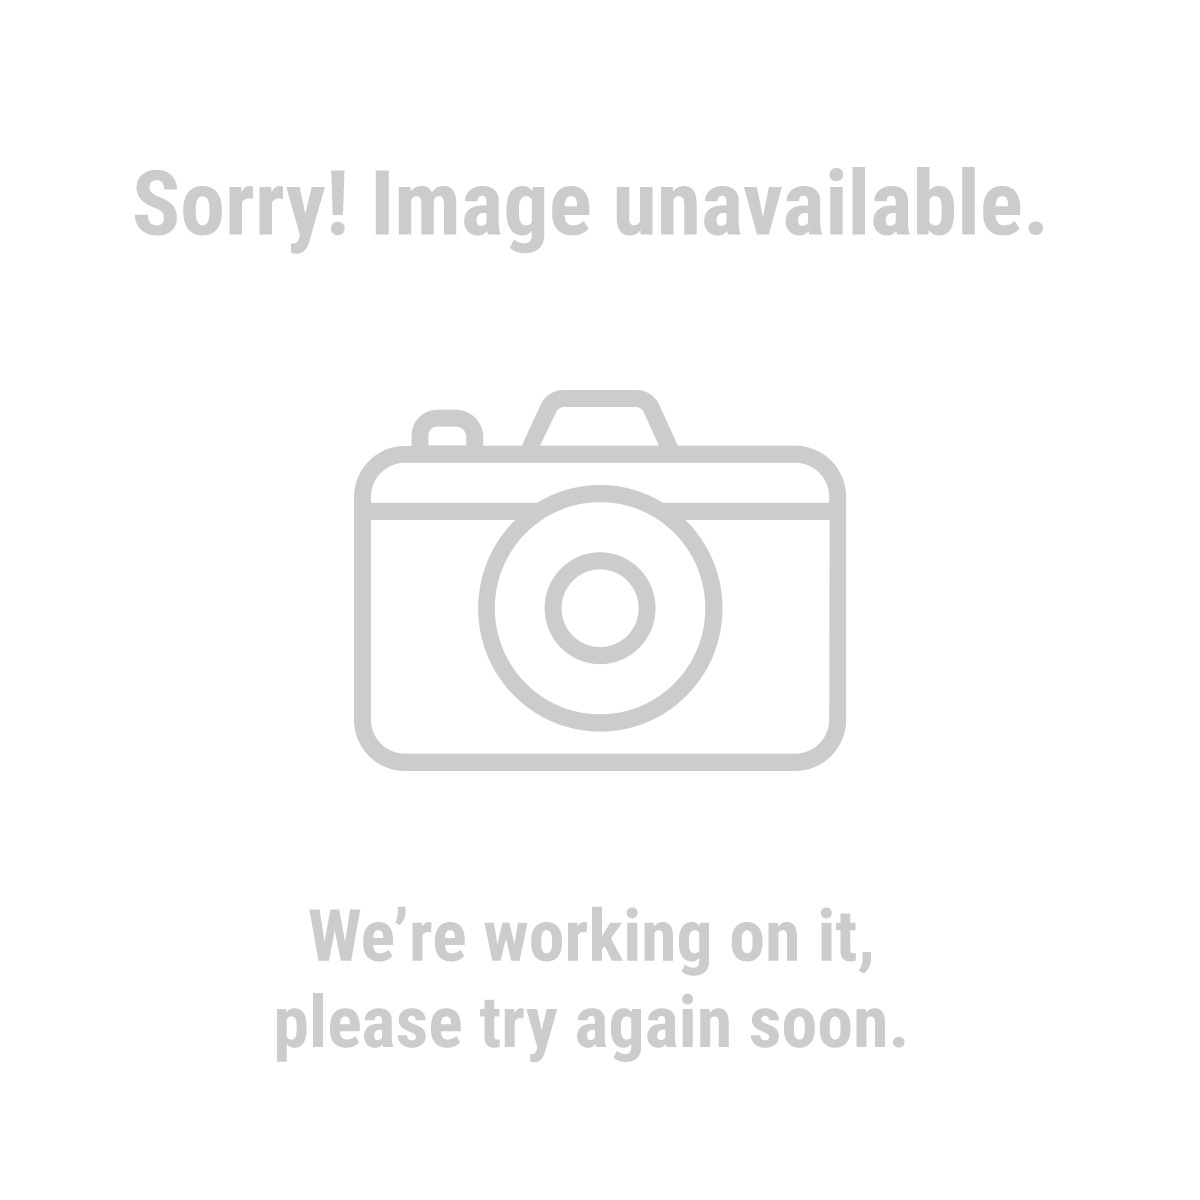 Bunker Hill Security 68332 Surveillance DVR with 4 Cameras and Mobile Monitoring Capabilities